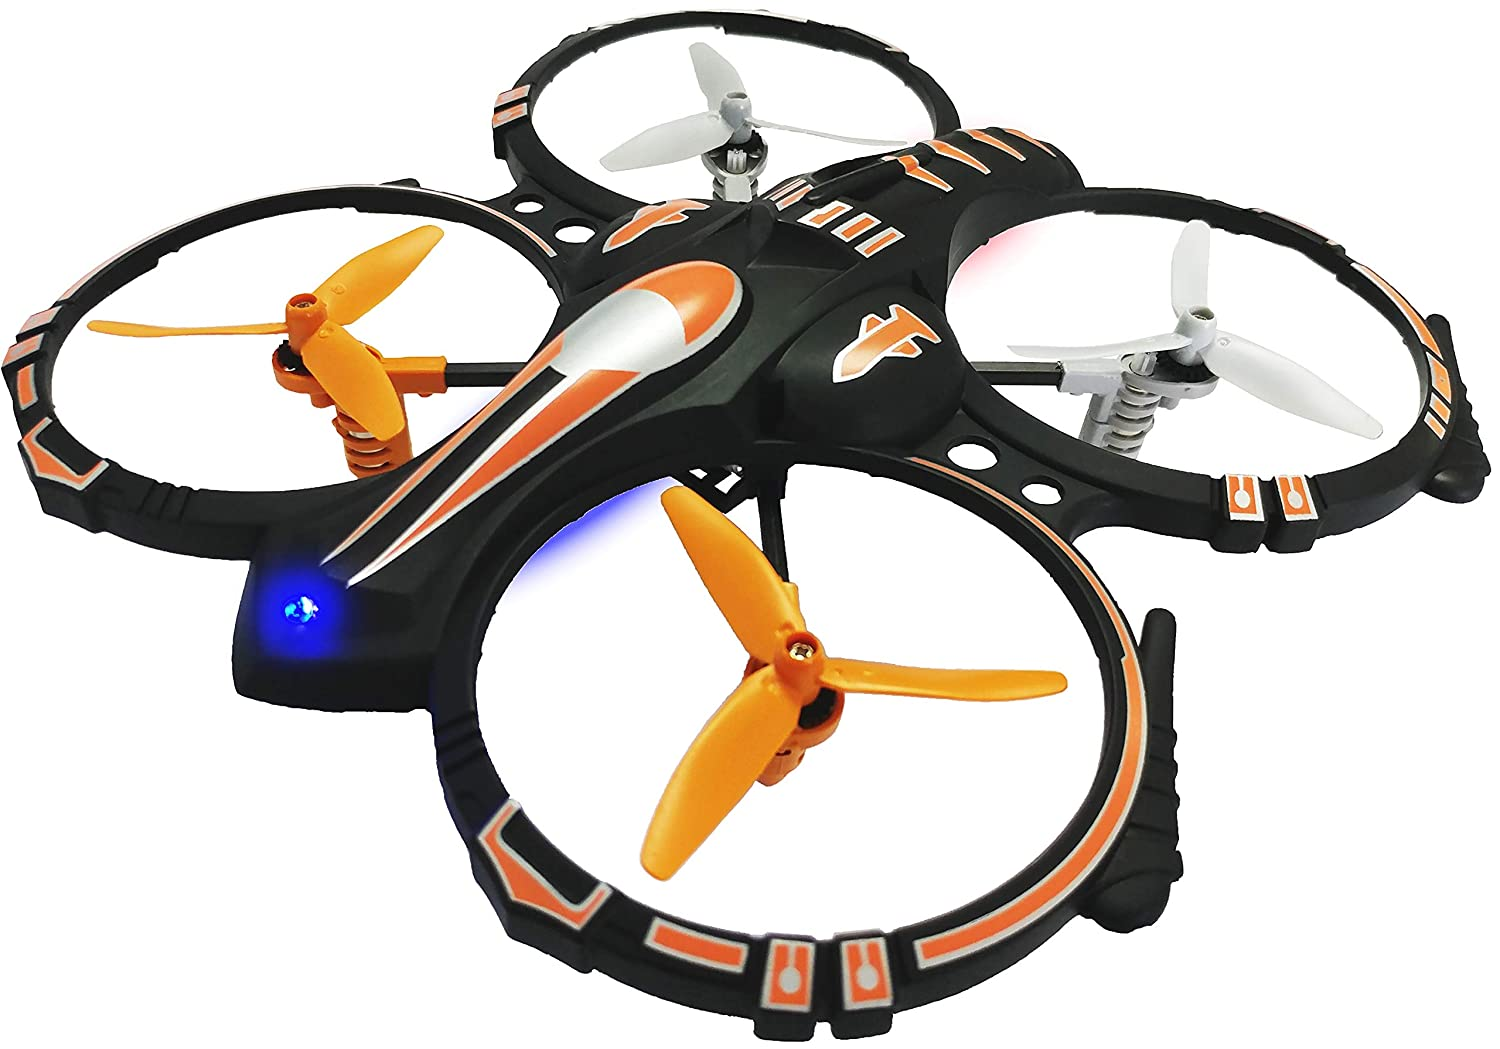 EWONDERWORLD Kid Drone for Beginners Easy to Fly Stunt Drone Quadcopter